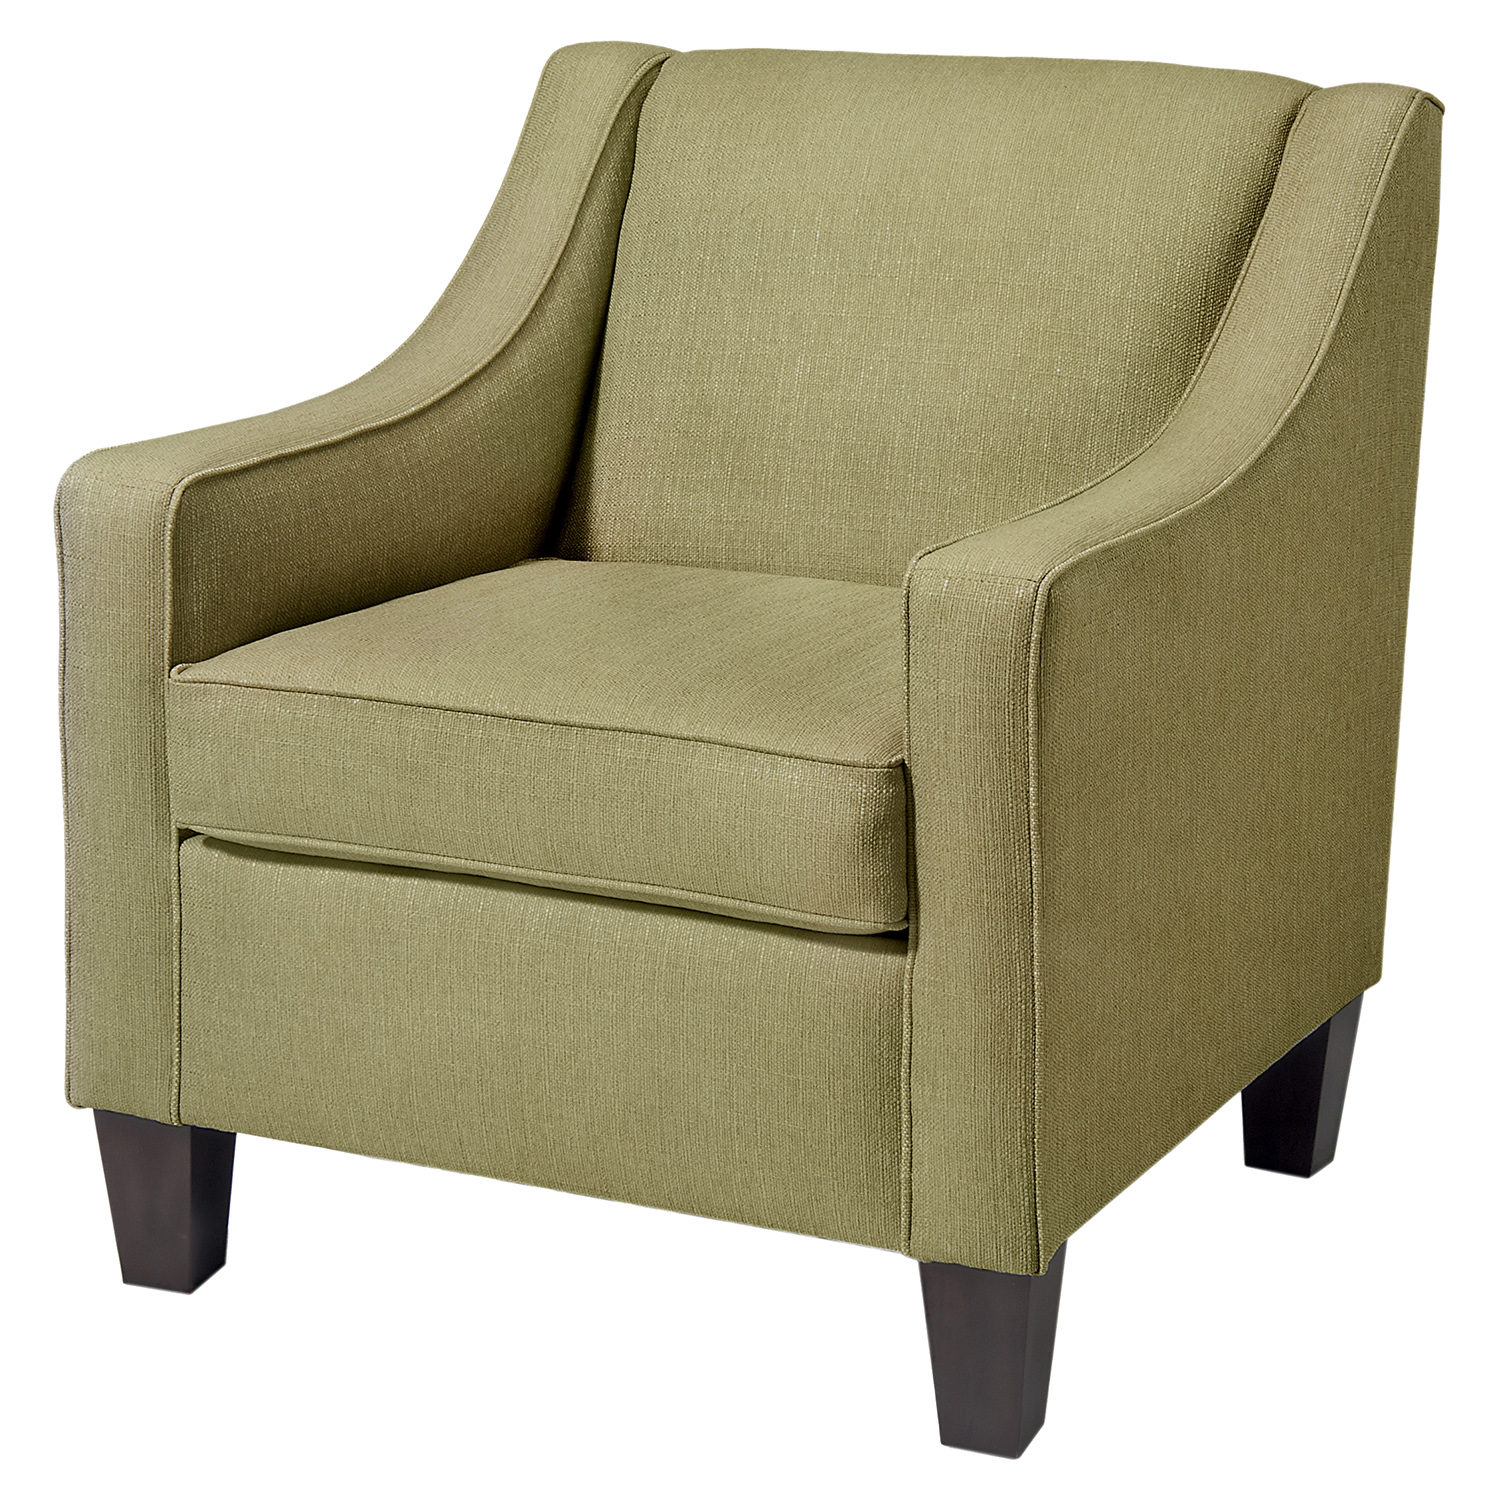 Ellery Club Chair - Kiwi